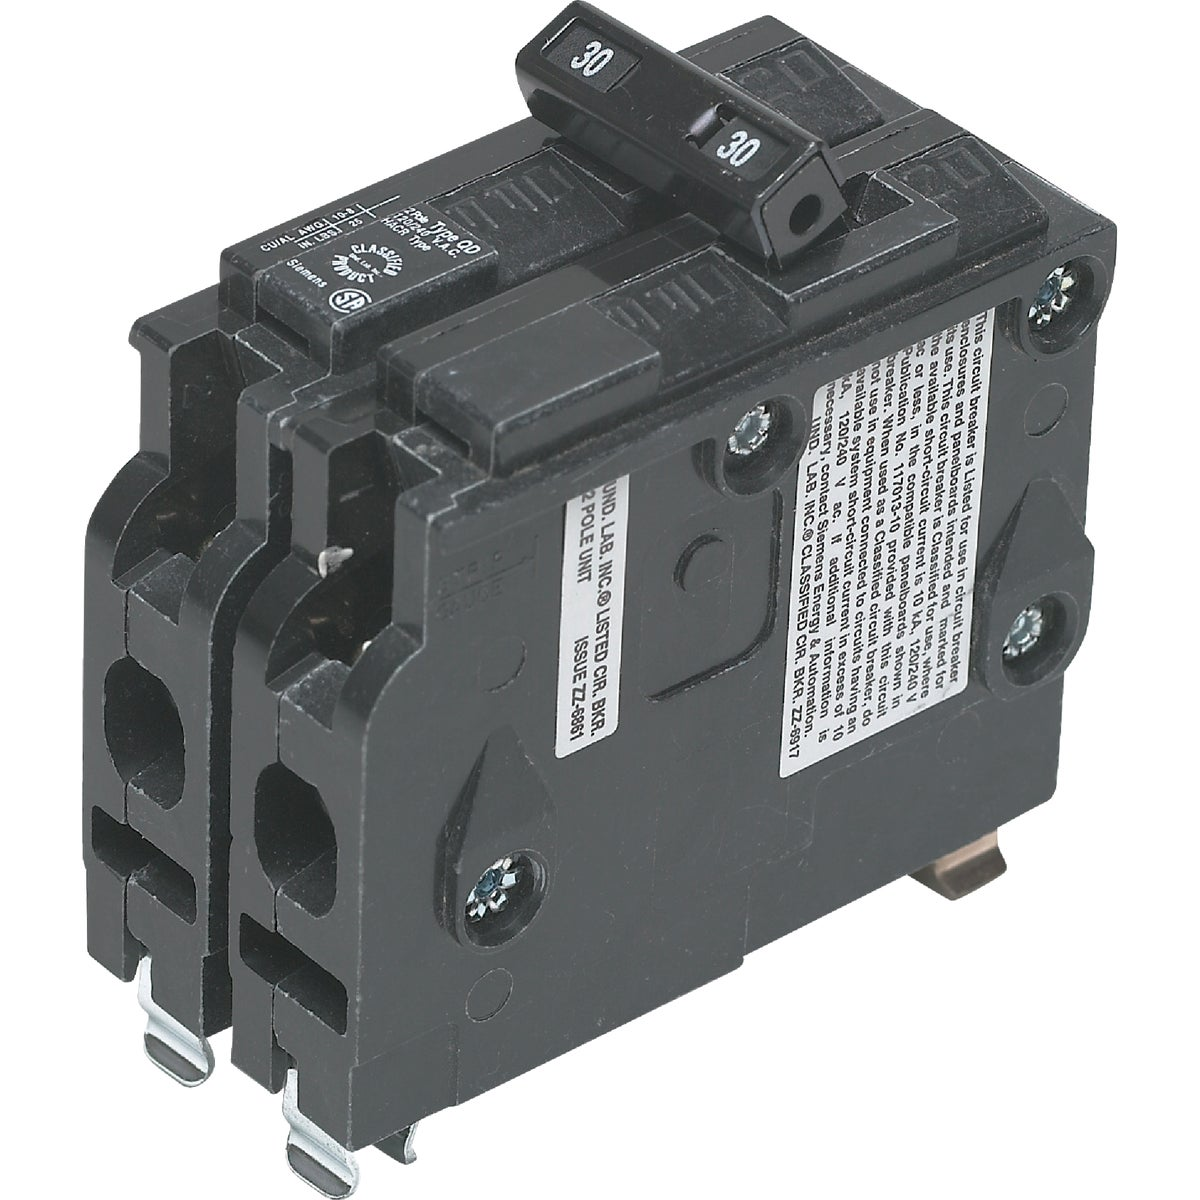 30A 2P CIRCUIT BREAKER - D230 by Connecticut Electric